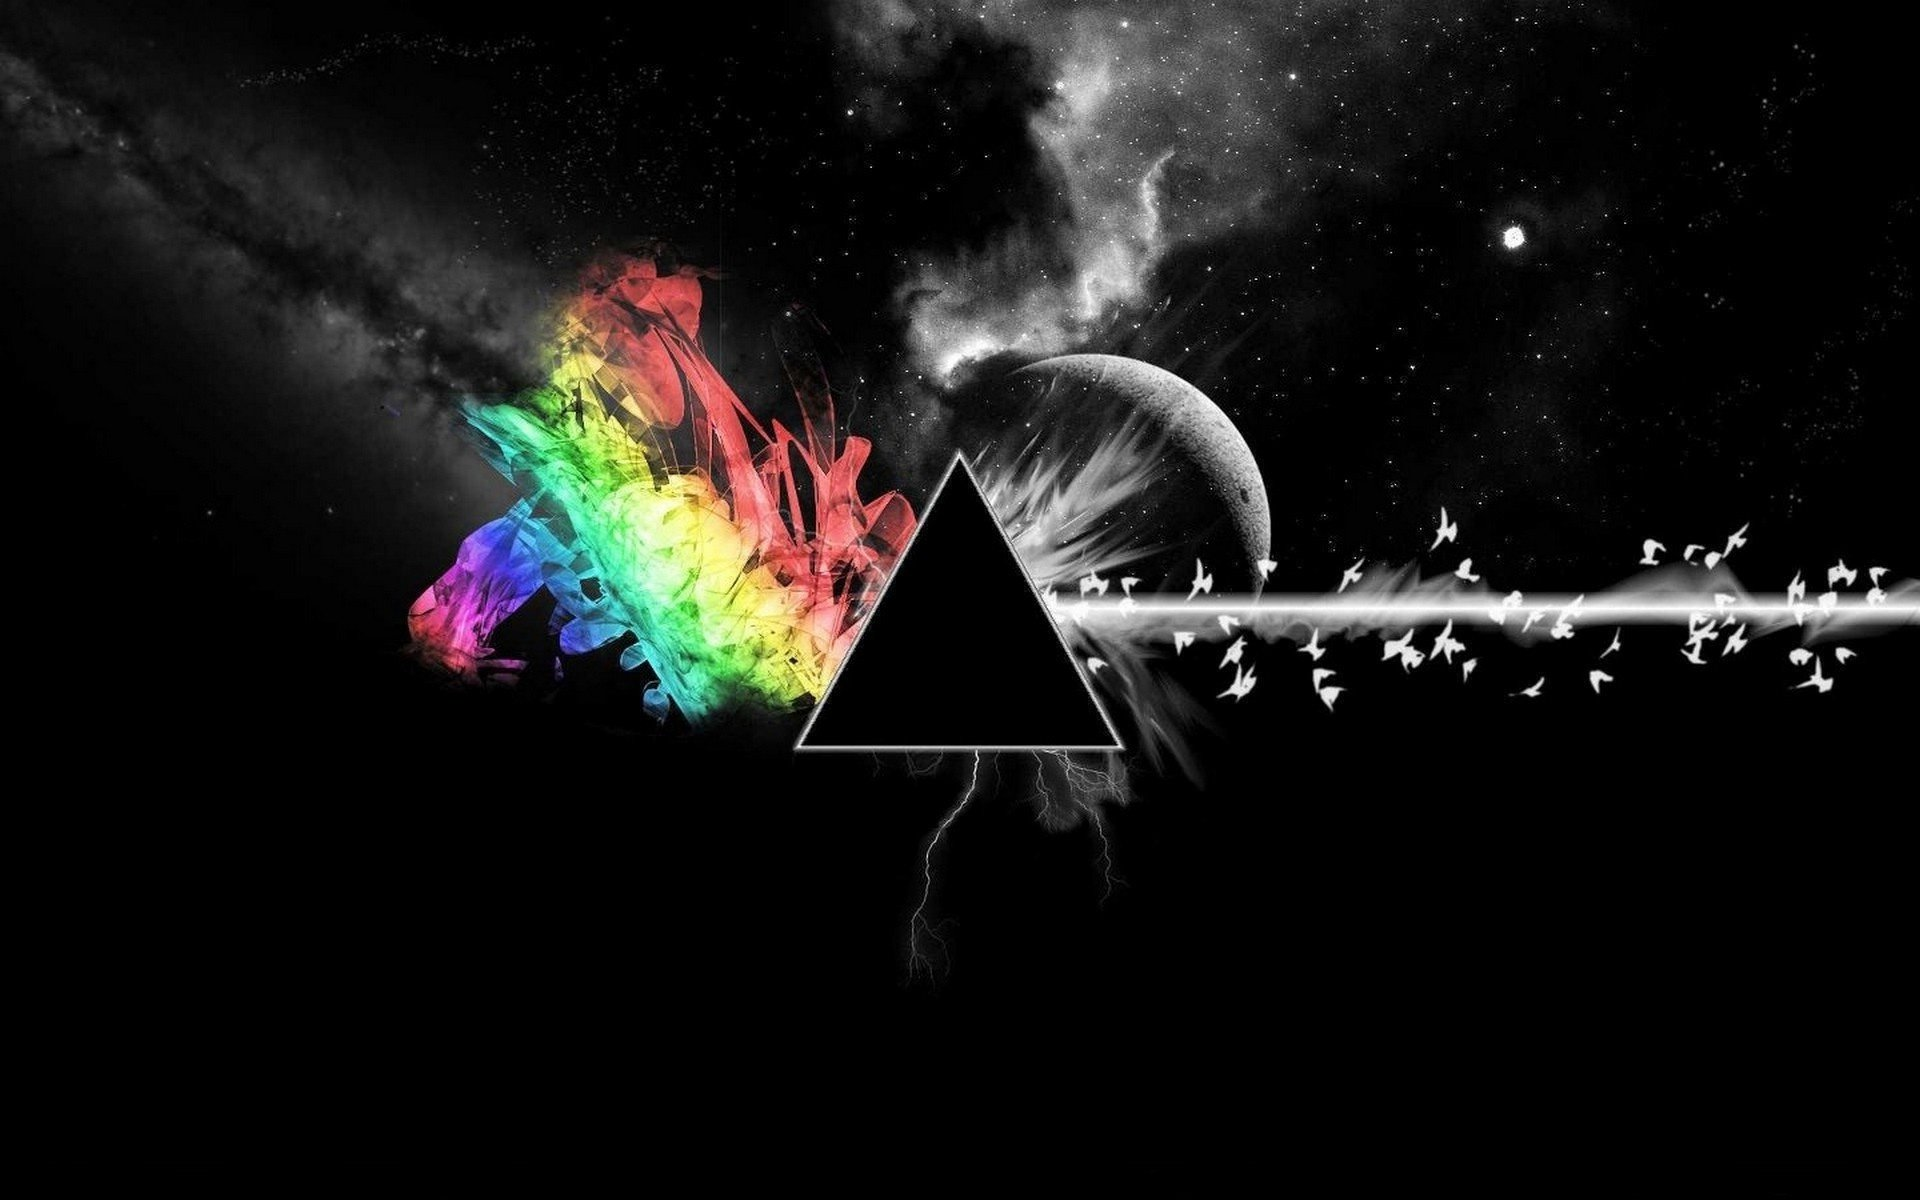 Free Download Desktop Wallpaper Dark Side Of The Moon H638197